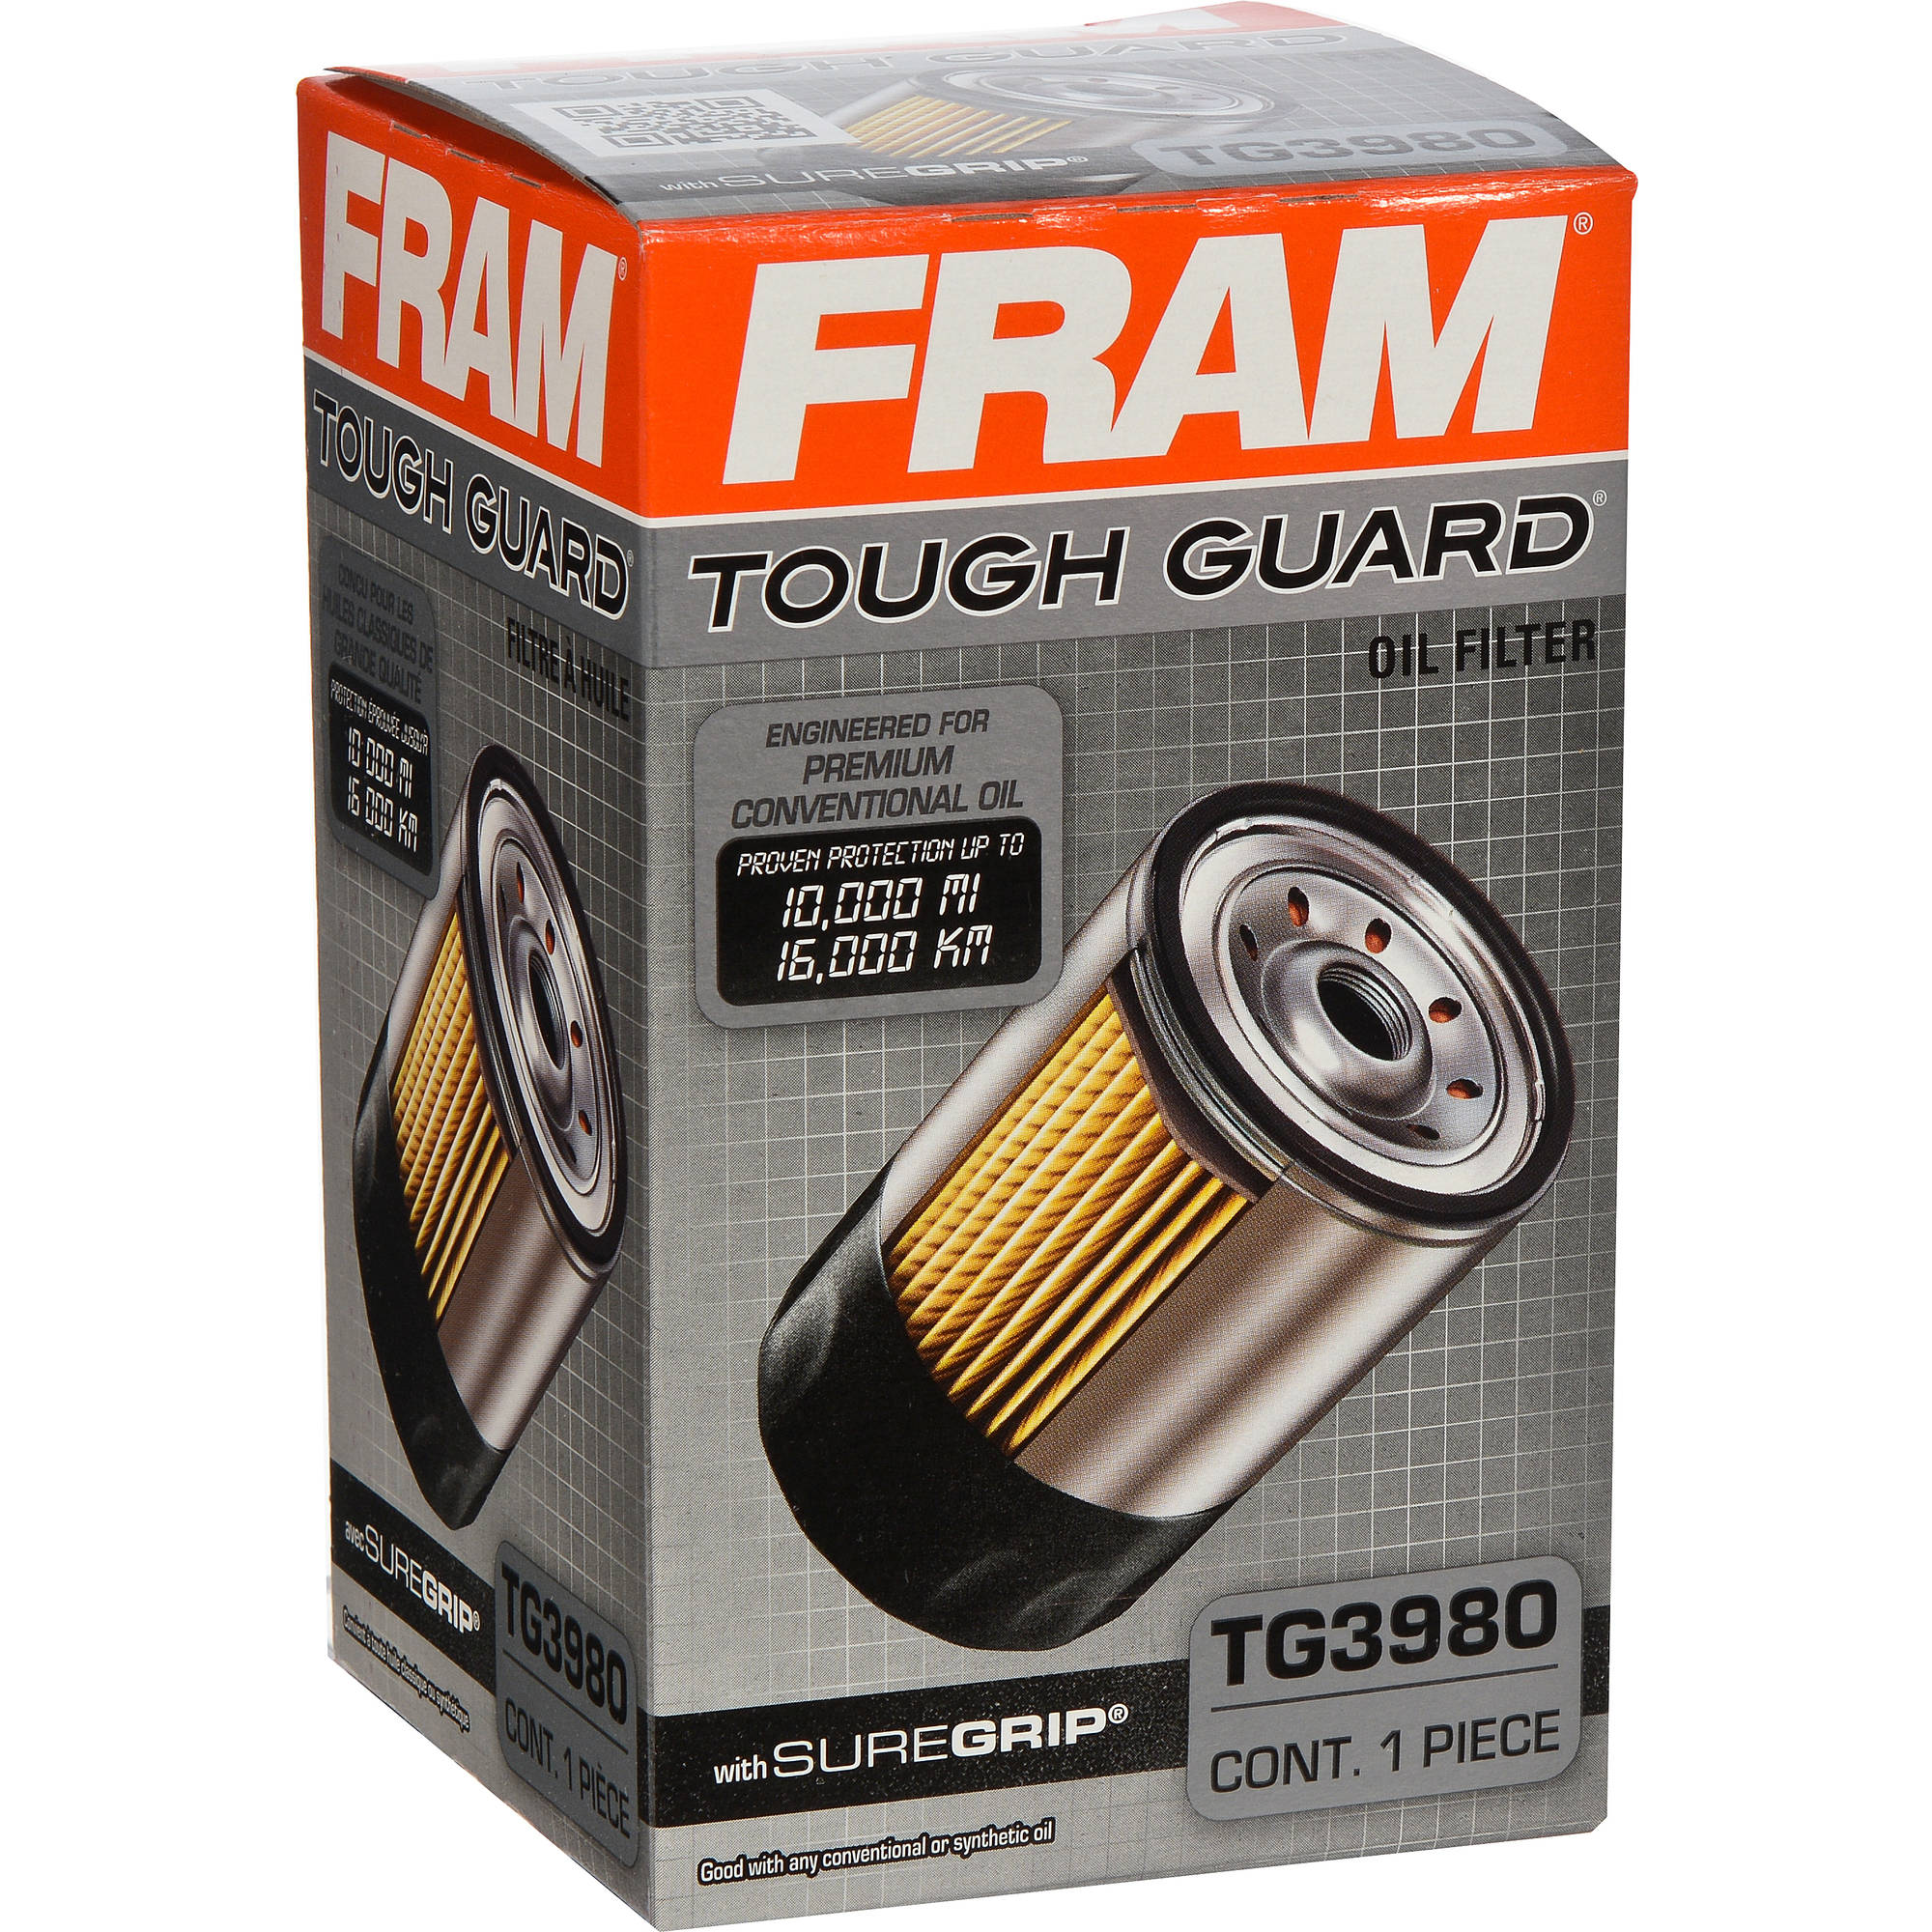 FRAM Tough Guard Oil Filter, TG3980